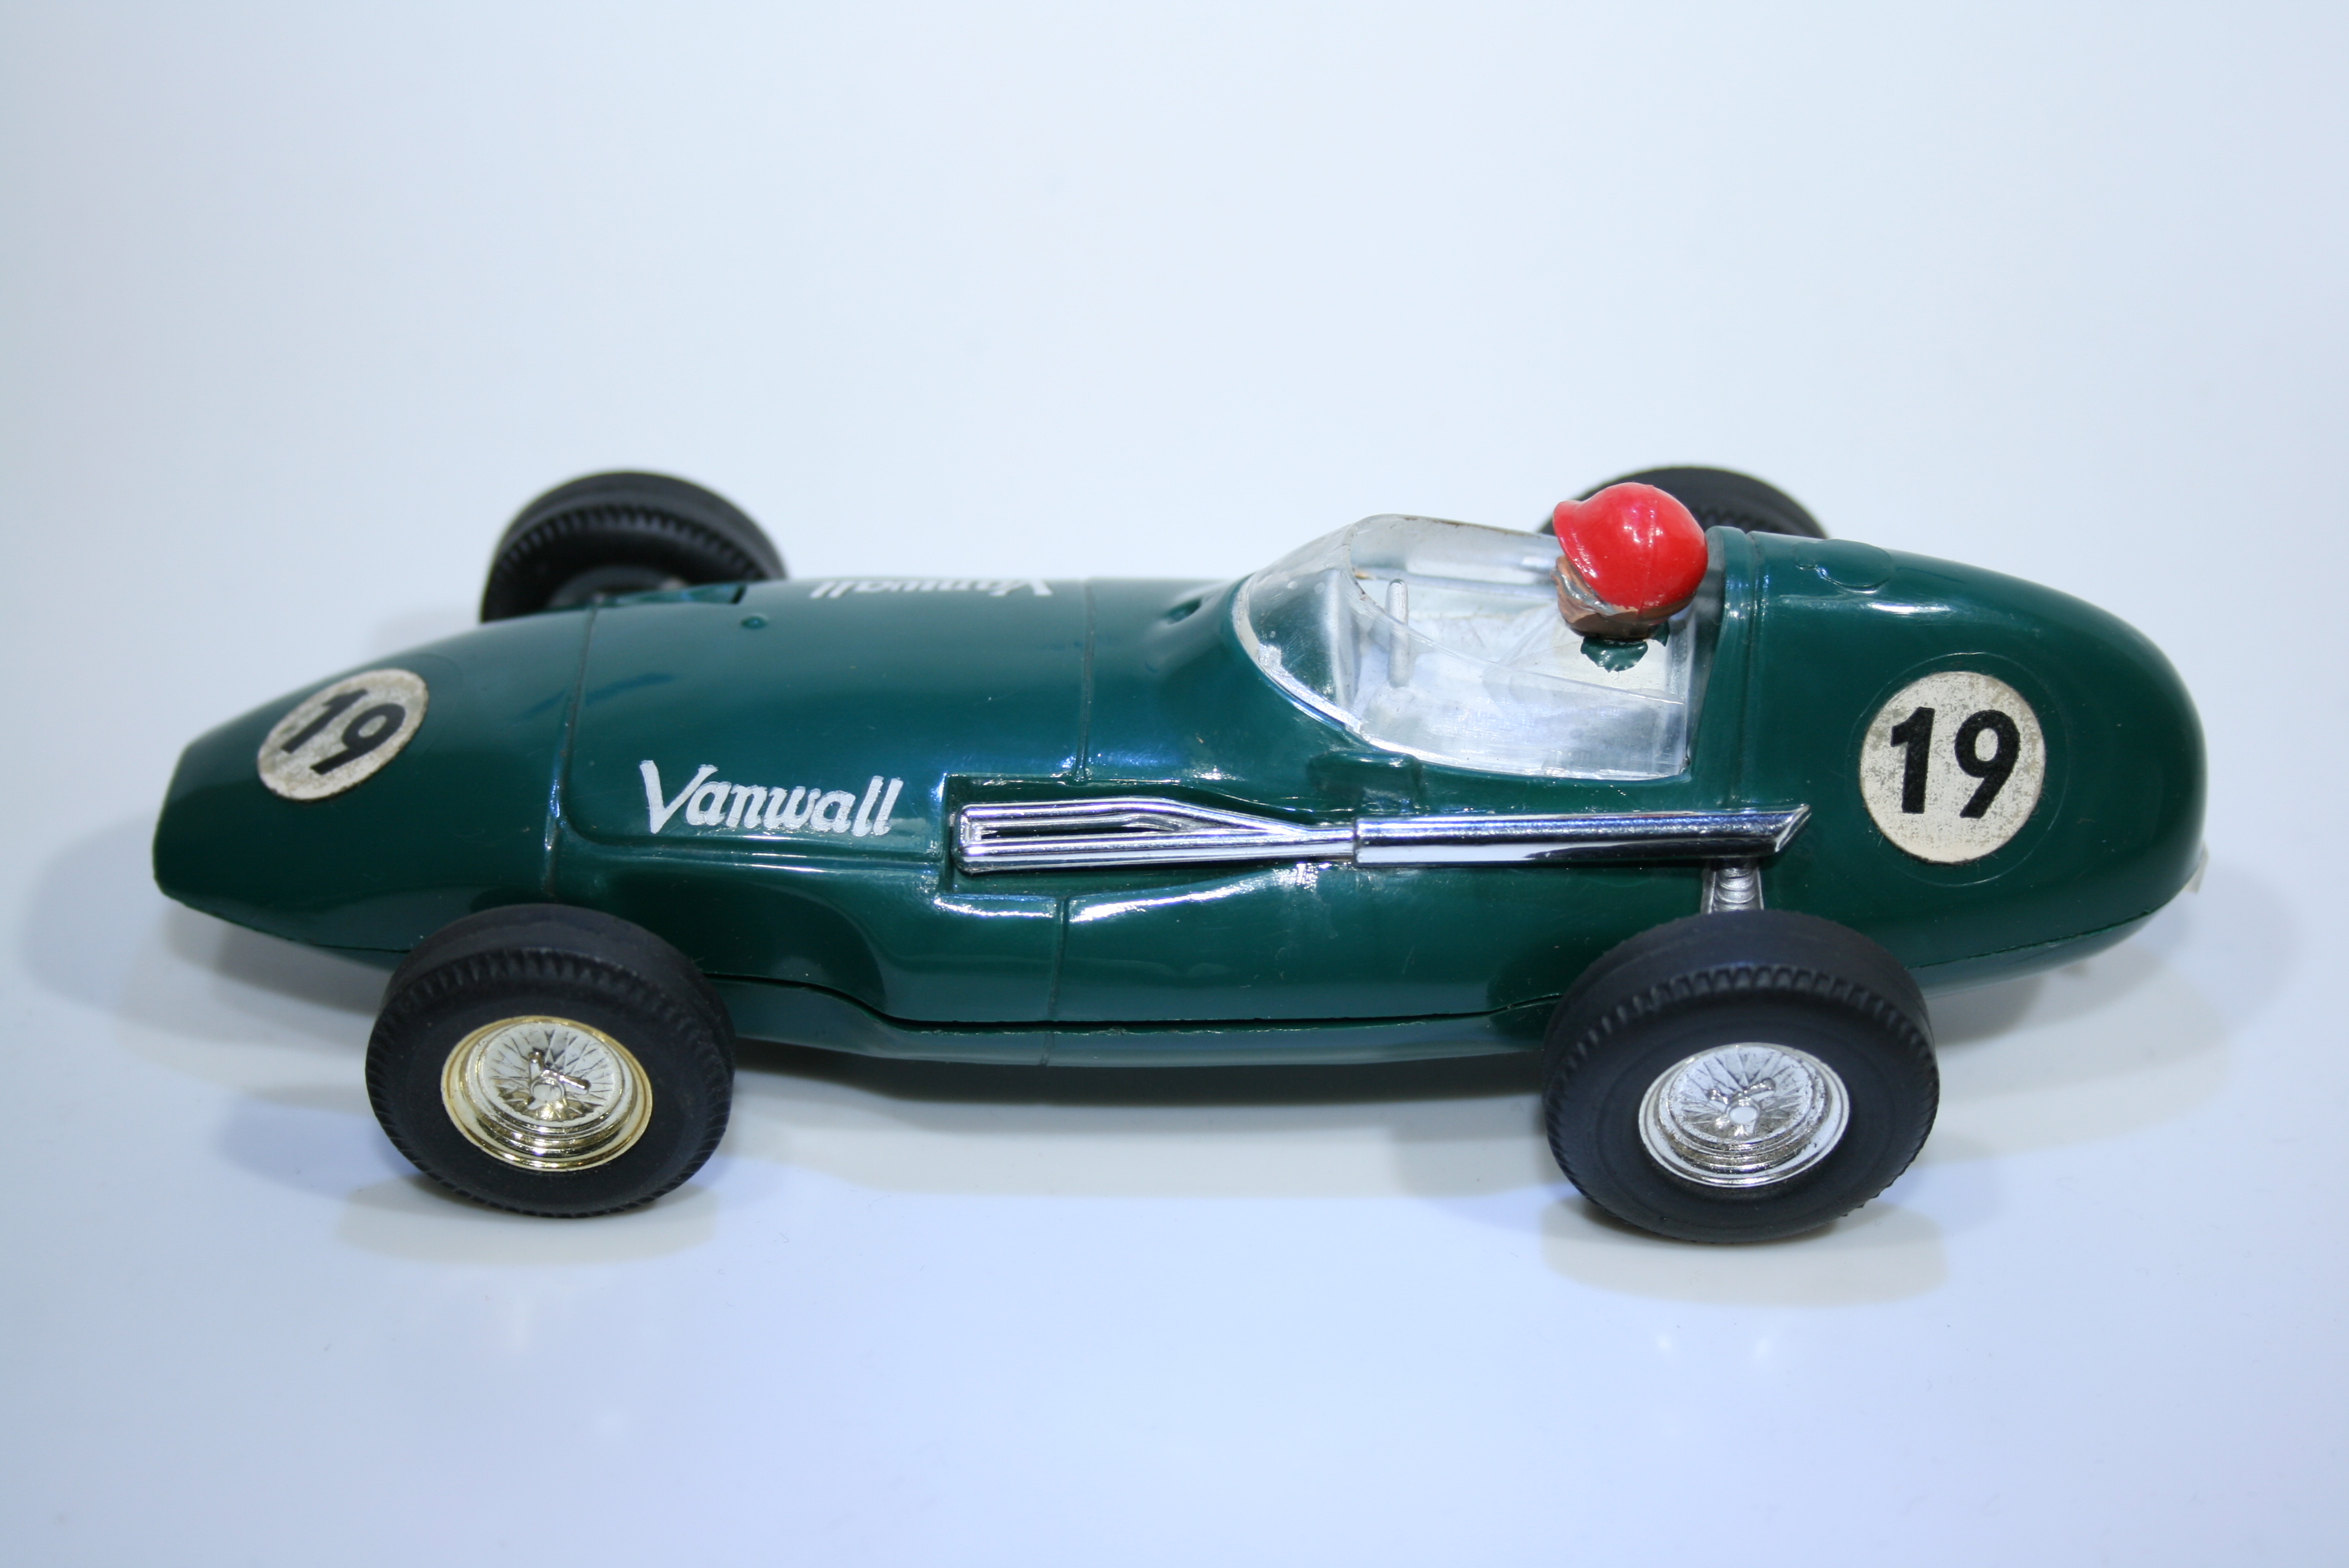 387 Vanwall VW5 1957 S Moss Scalextric C55 1960-67 Boxed